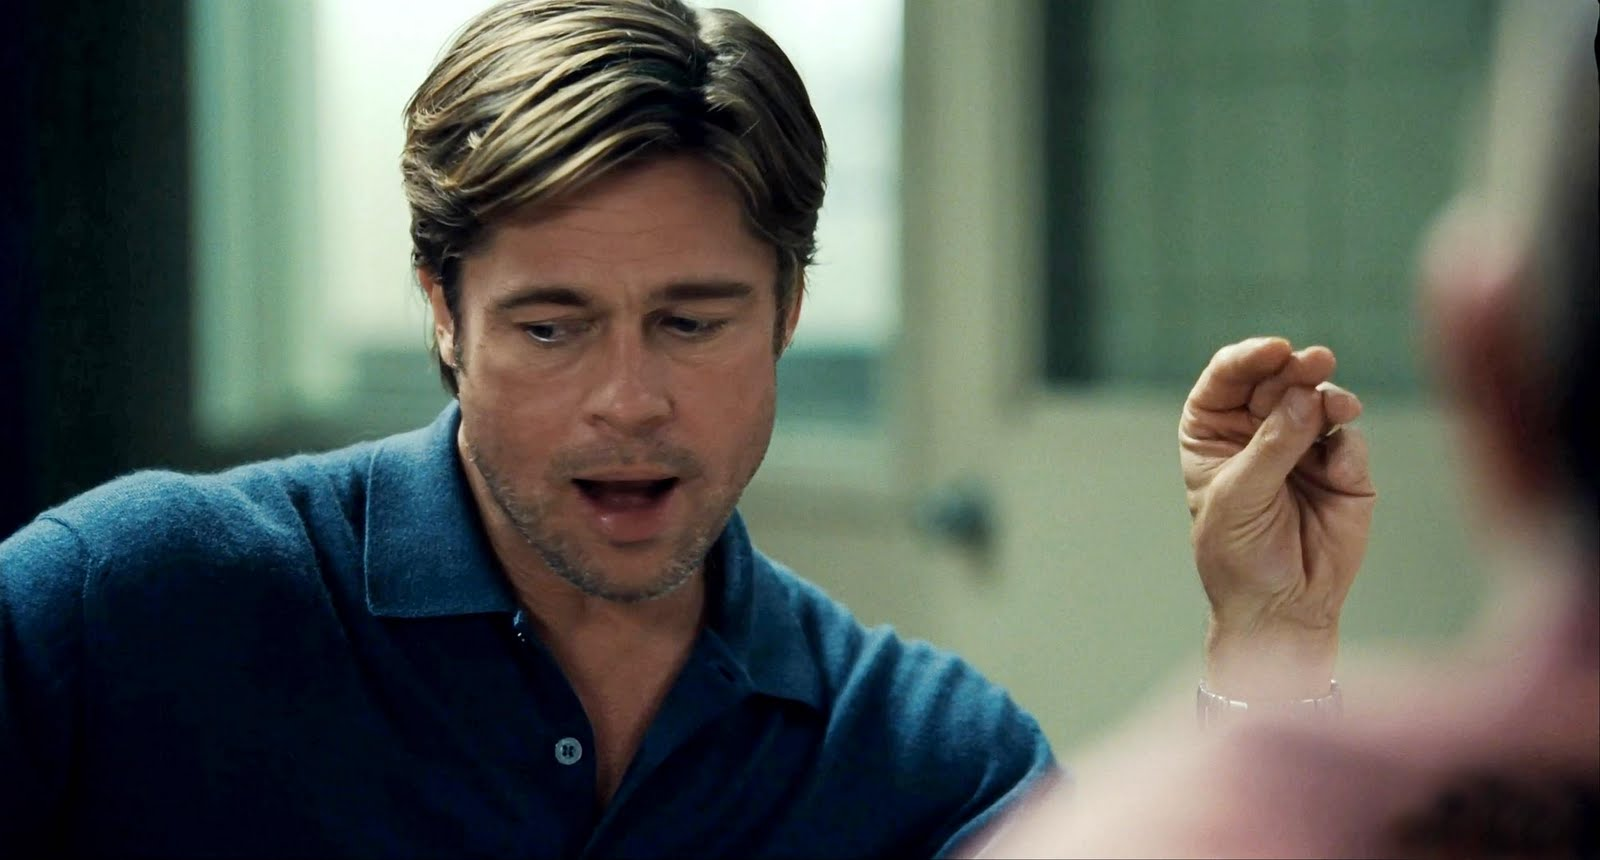 Moneyball film